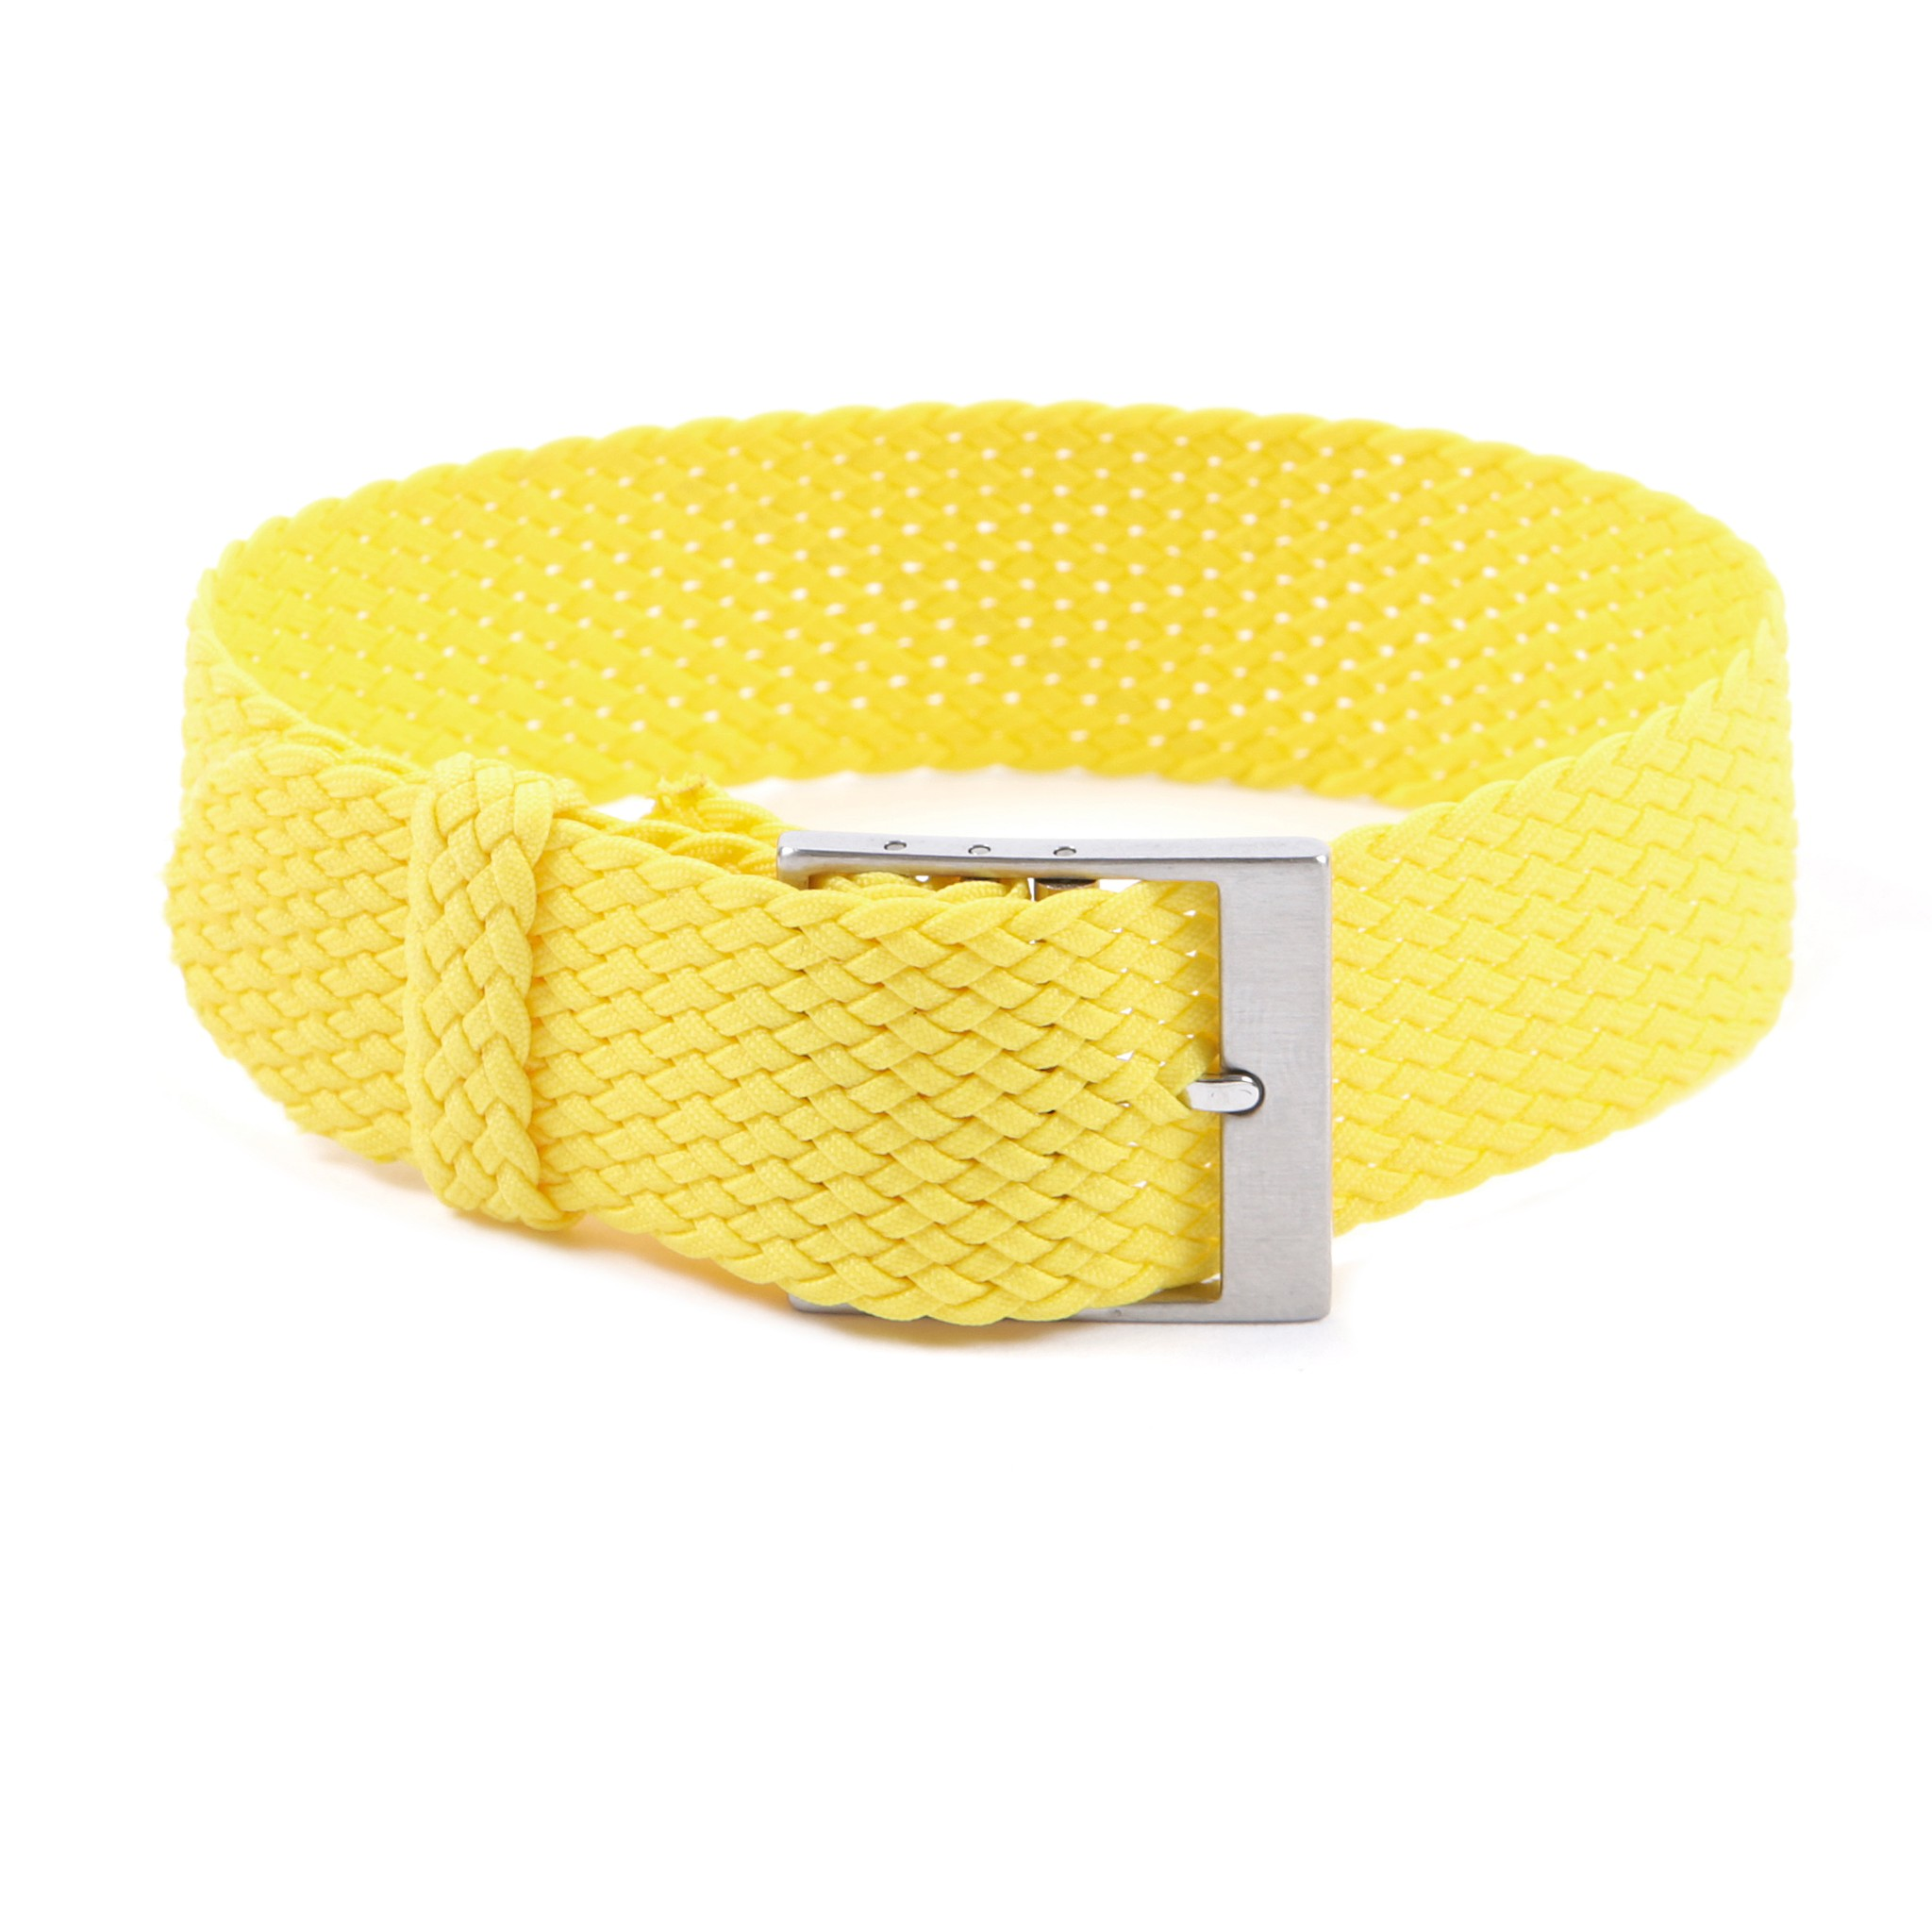 Perlon Perlon Strap Light Yellow 20mm